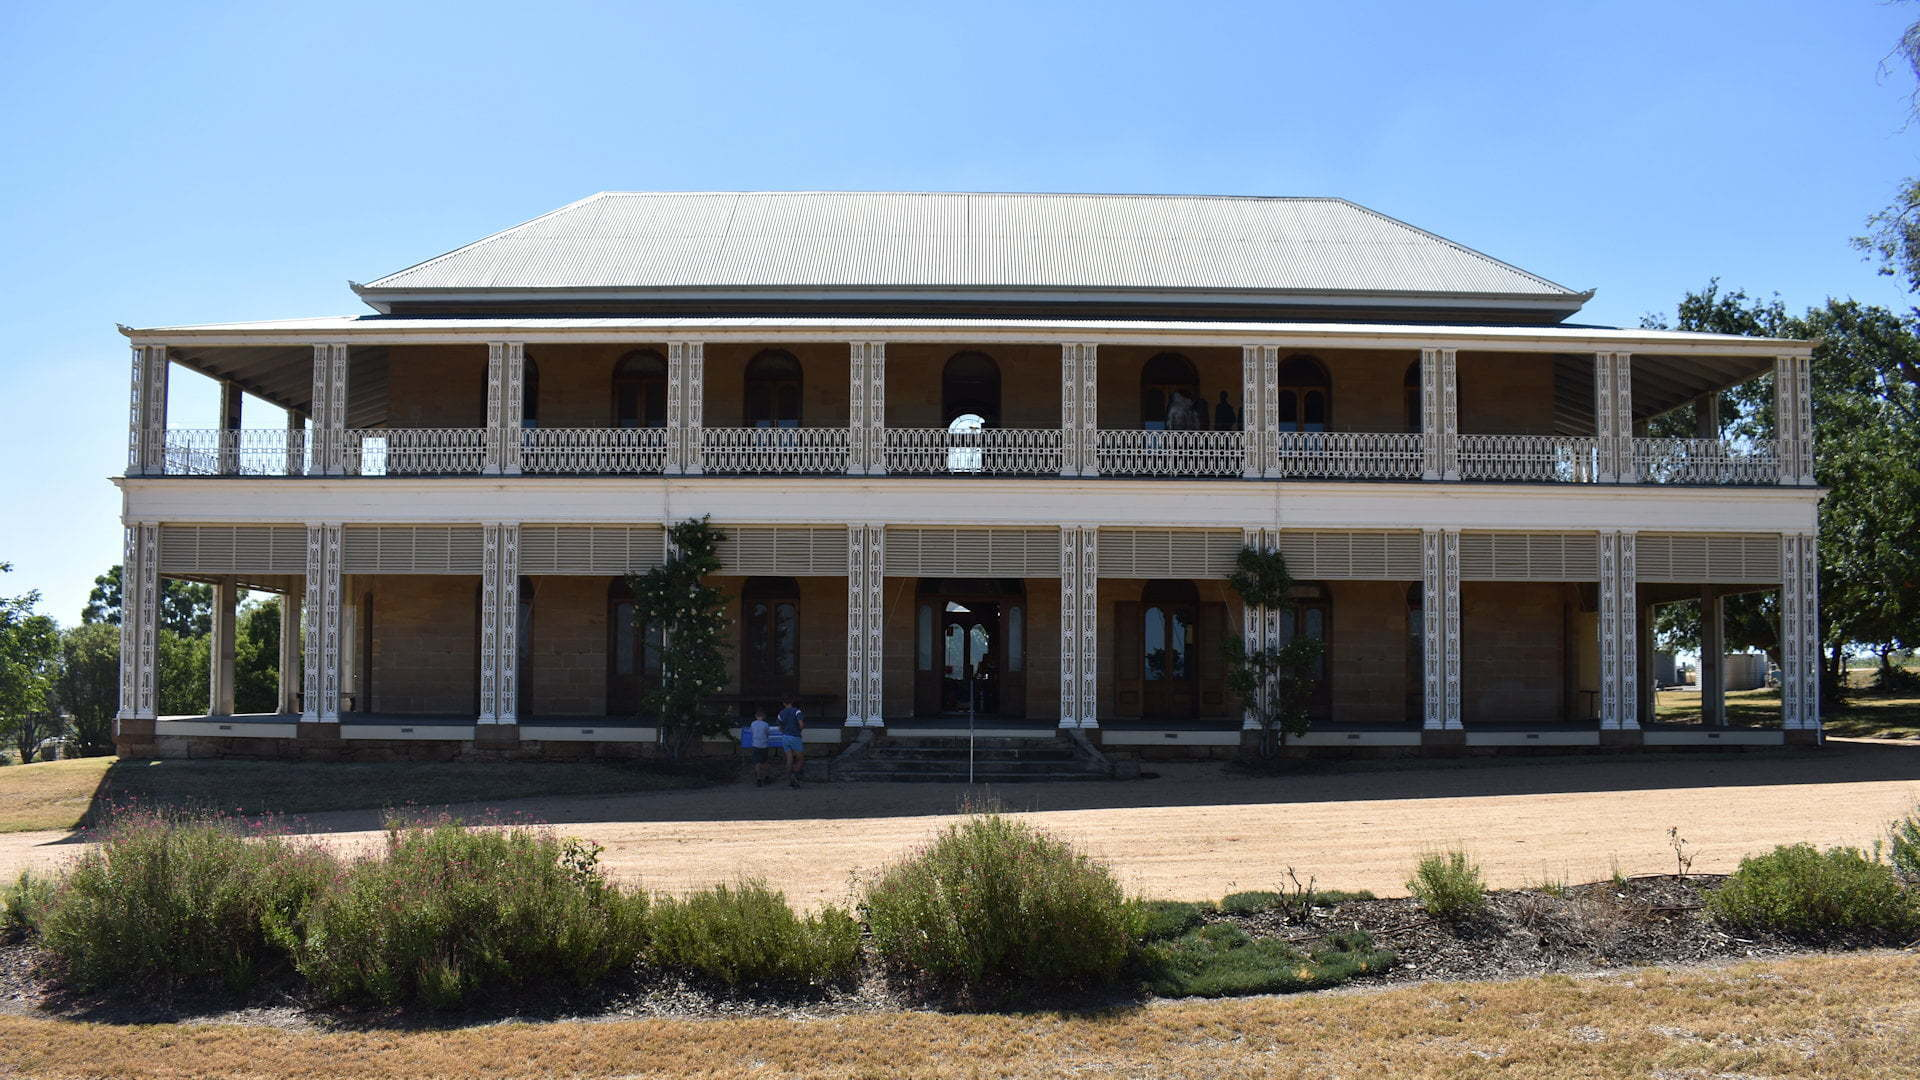 The front of Glengallen Homestead, a heritage listed homestead built in 1867 before being left to ruin then restoration beginning in 2002